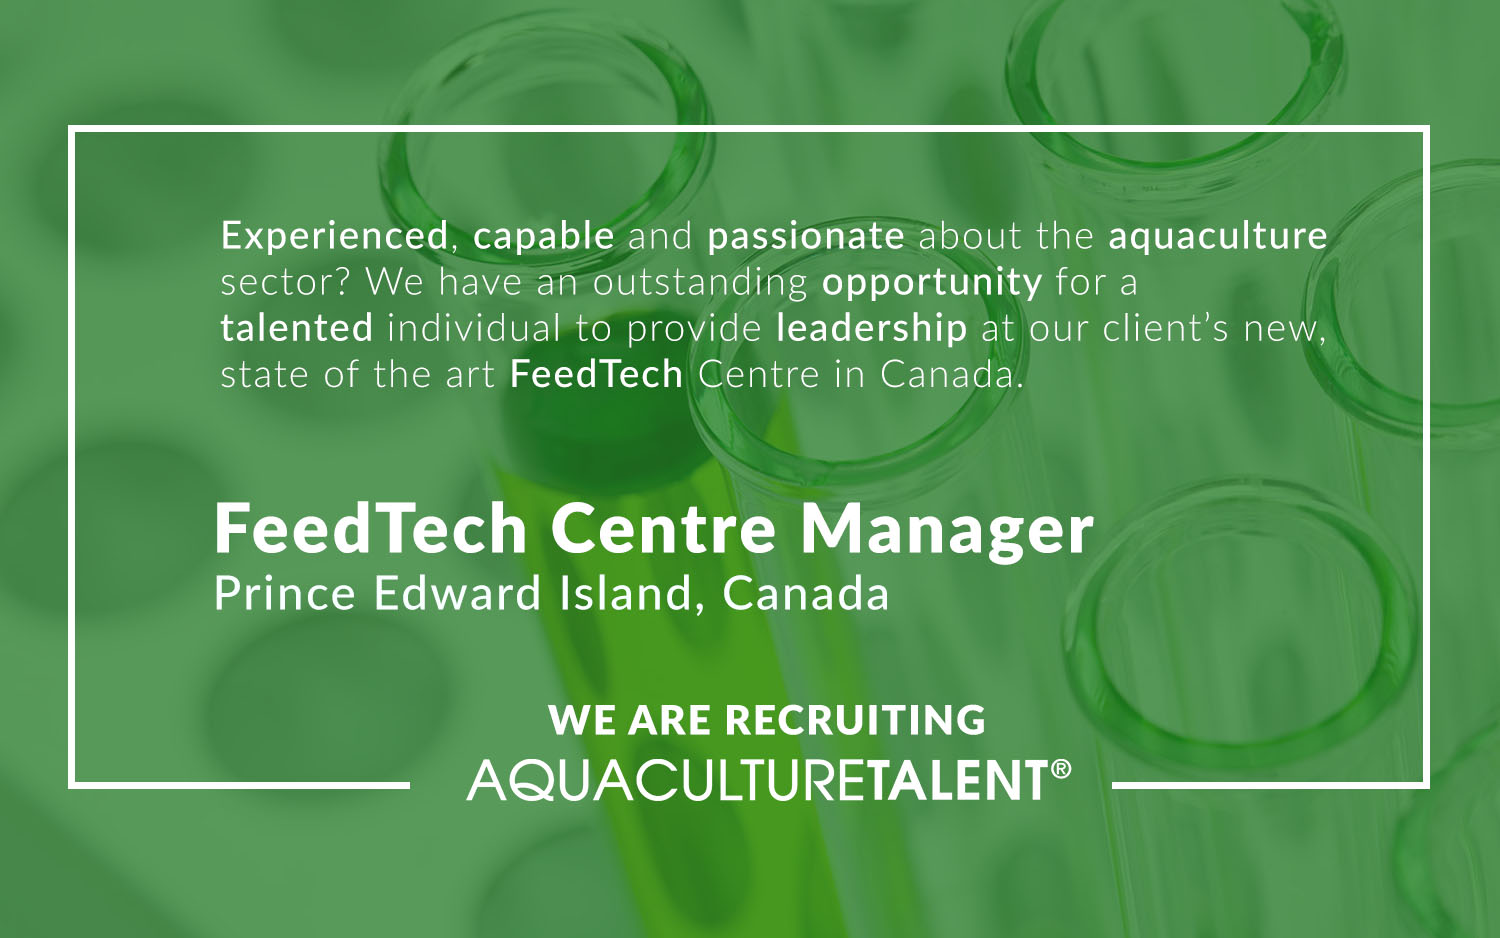 Experienced, capable and passionate about the aquaculture sector? We have an outstanding opportunity for a talented individual to provide leadership at our clients new facility in Canada.